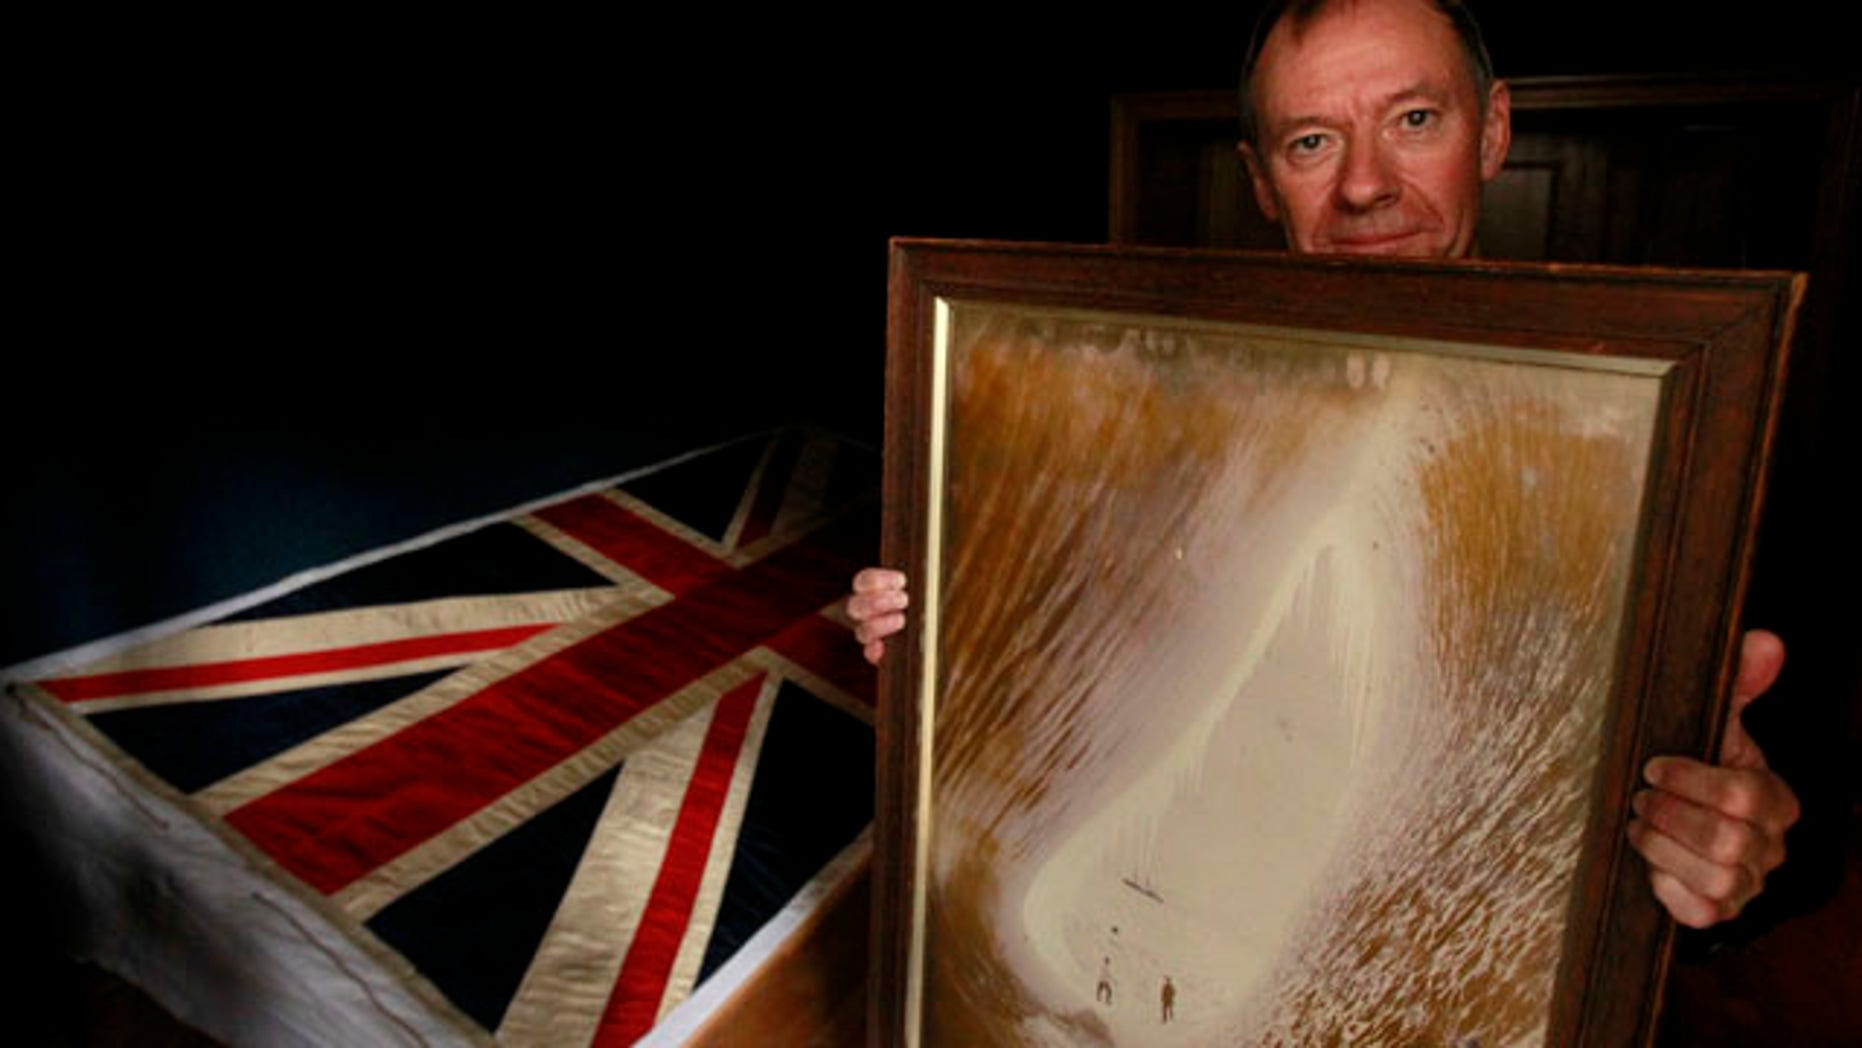 Sept. 20, 2010: Adrian Raeside from Canada, holds a photograph of his grandfather Sir Charles Seymour Wright and great-uncle Thomas Griffith Taylor in front of a silk union flag that belonged to captain Robert Falcon Scott and was used on the two expeditions he led to the Antarctic at the Christie's auction house in London.